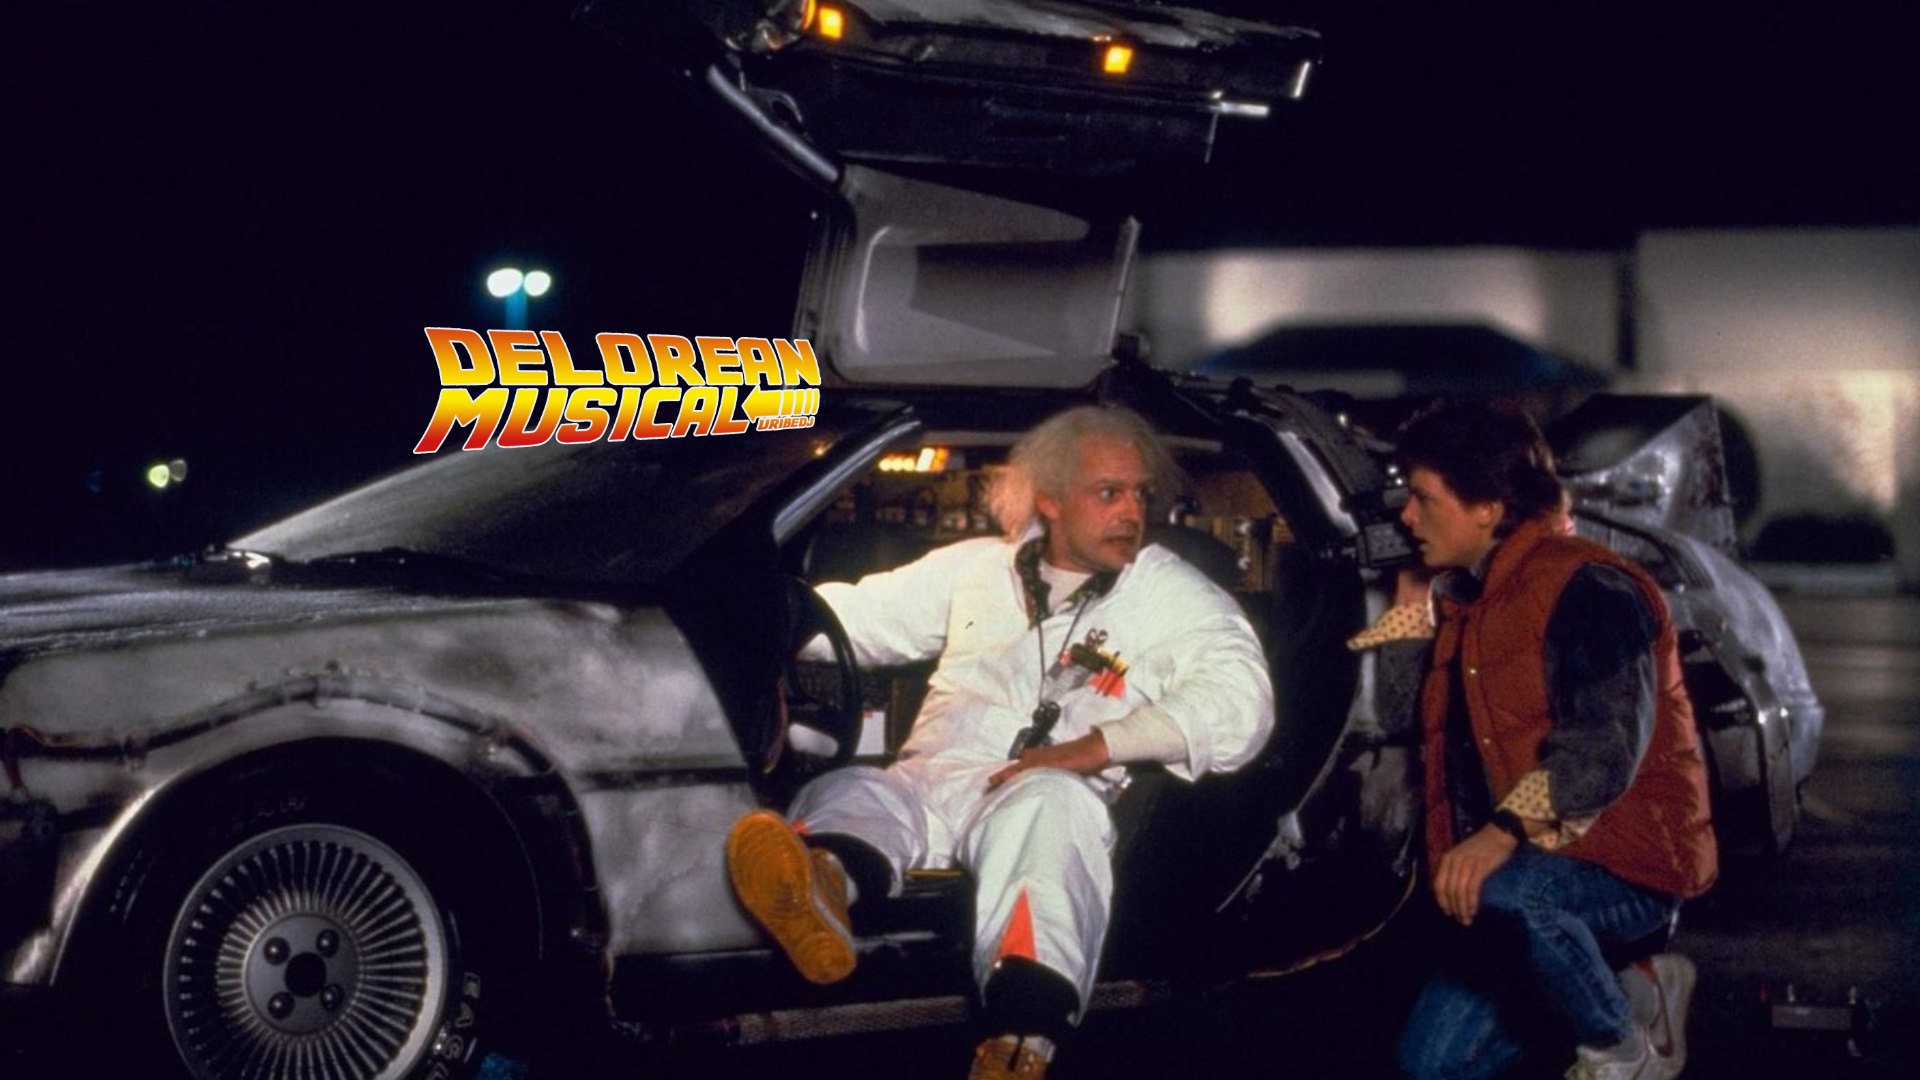 Delorean Musical episodio 6: La historia de 'Mr. Jones'